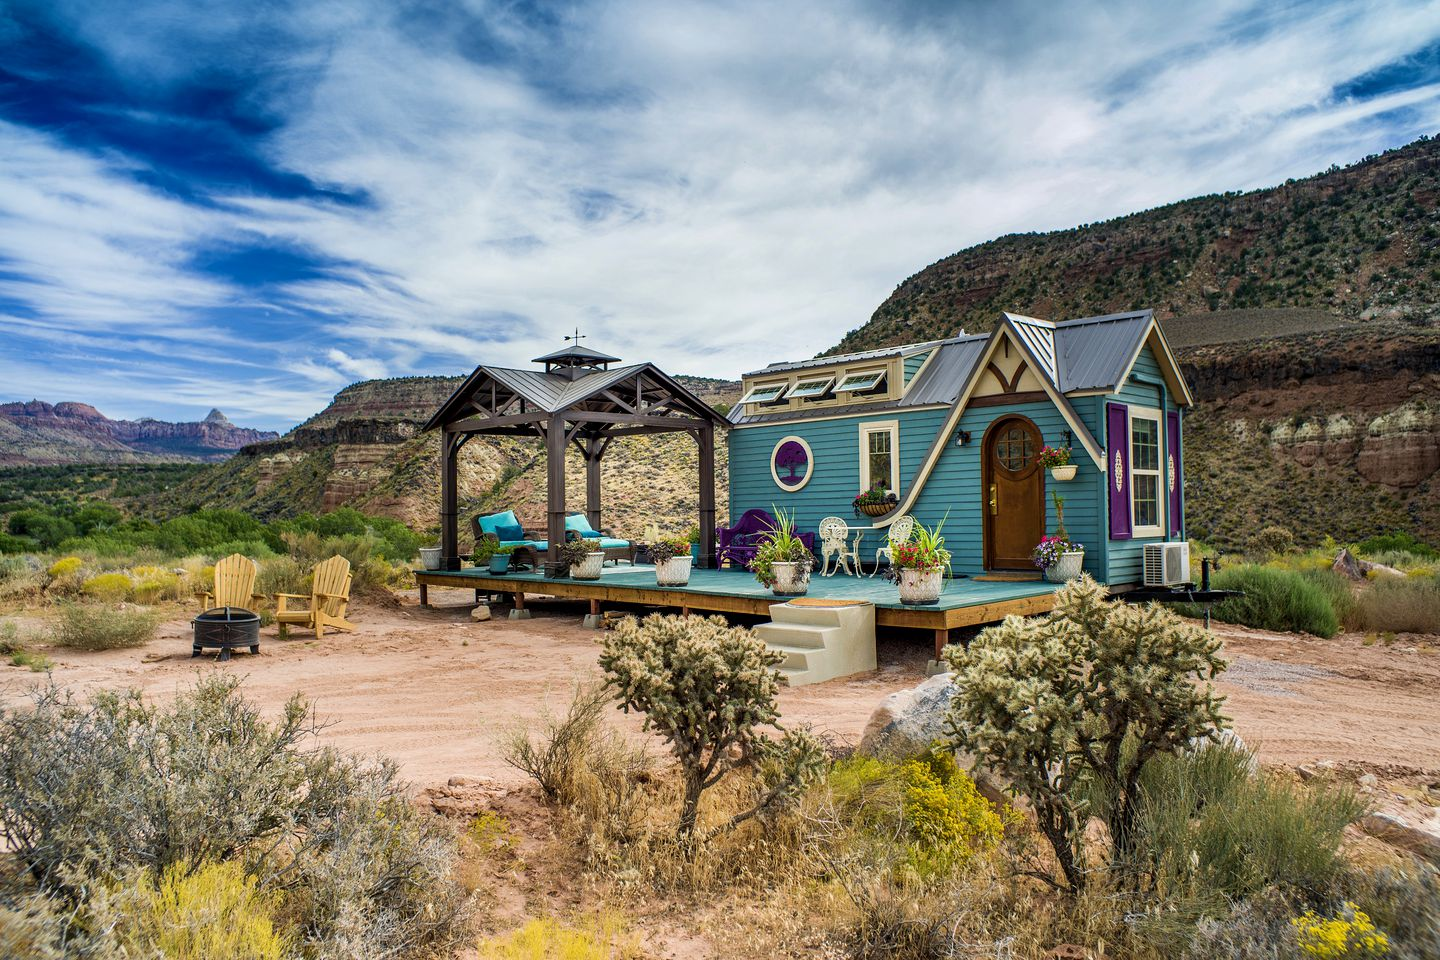 This tiny house is the ultimate choice for Zion National Park getaways